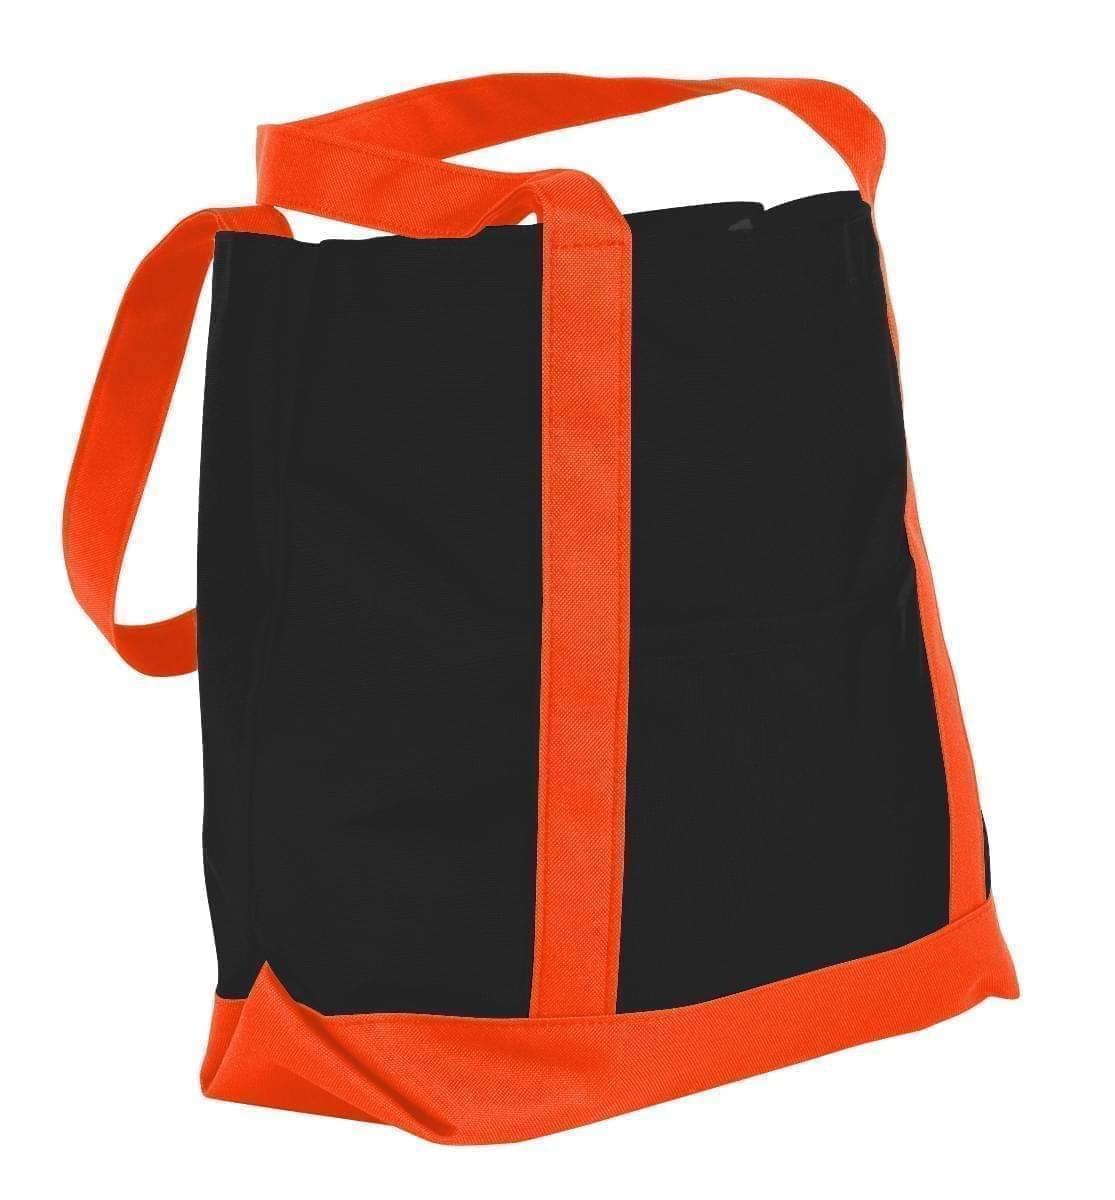 USA Made Canvas Fashion Tote Bags, Black-Orange, XAACL1UAHJ